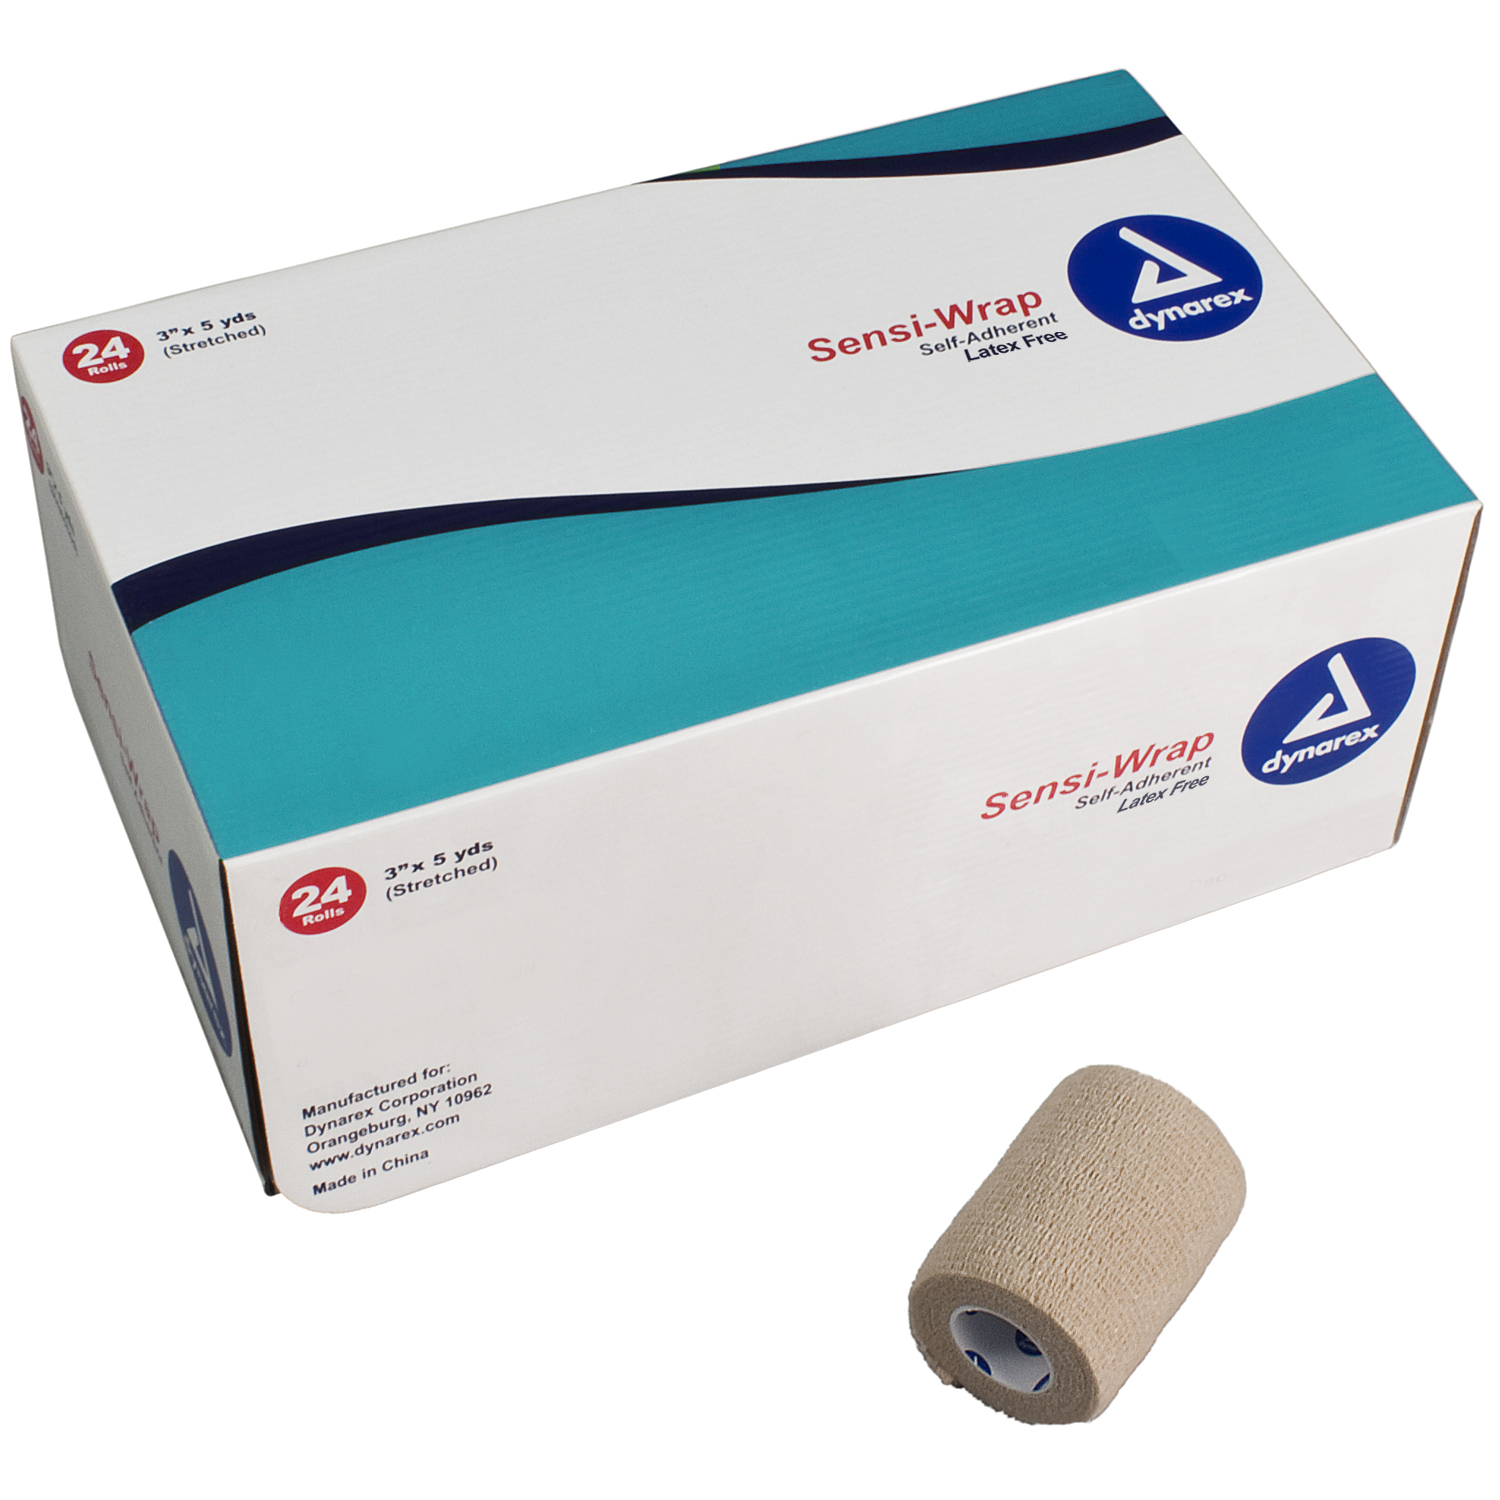 3 Inch Latex Free Sensi-Wrap: Single Roll image